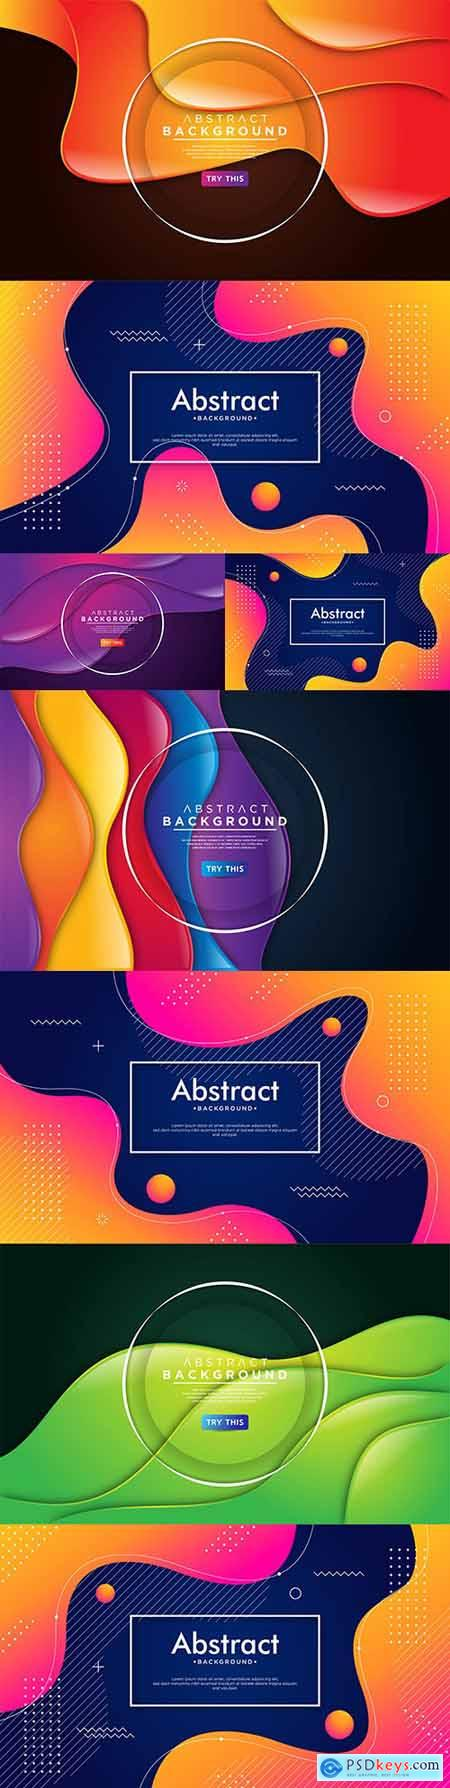 Abstract gradient wave background with colorful shapes 2